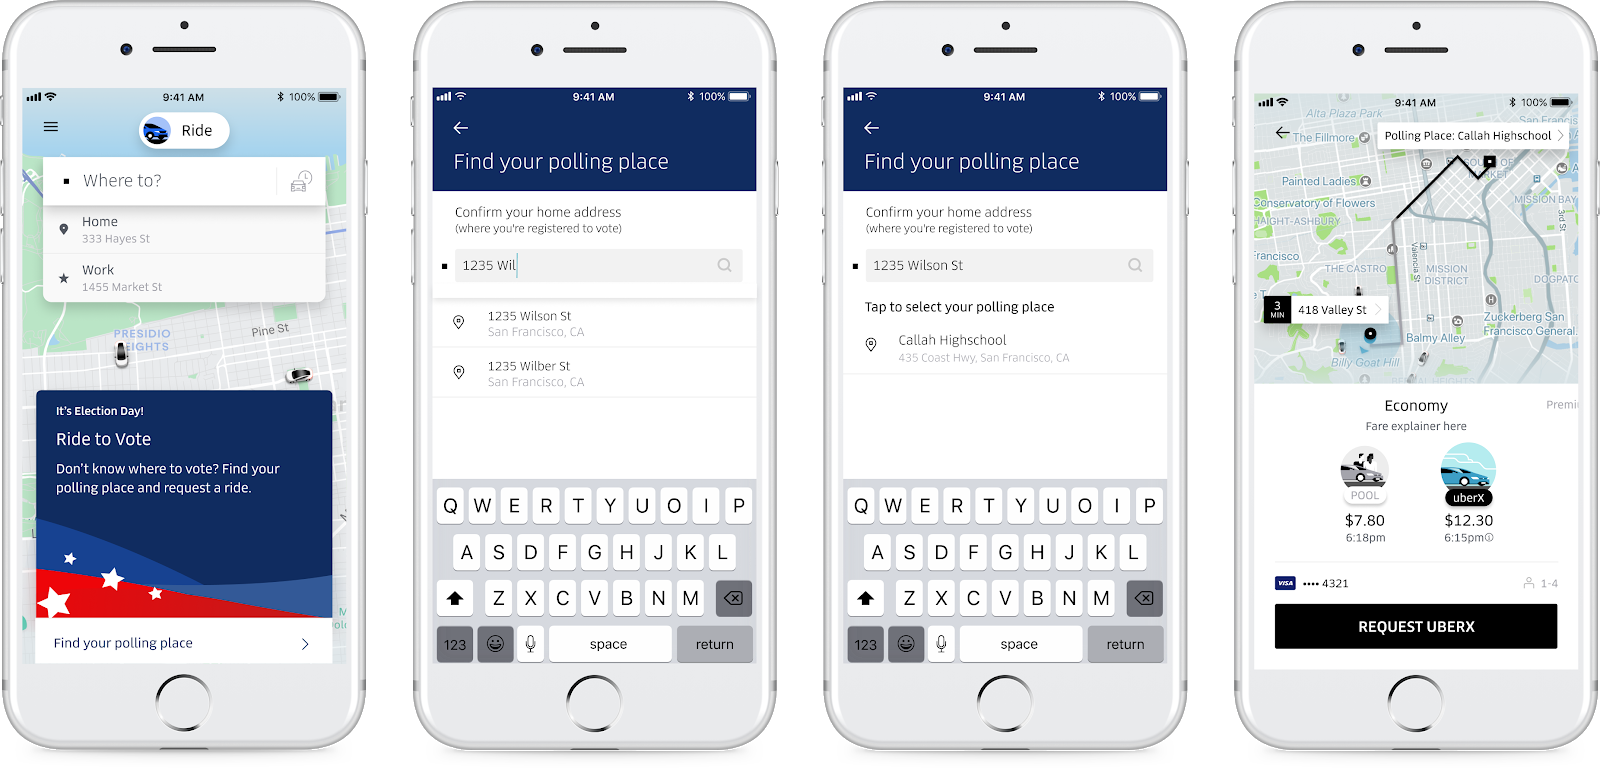 Uber will offer free rides to the polls on Election Day